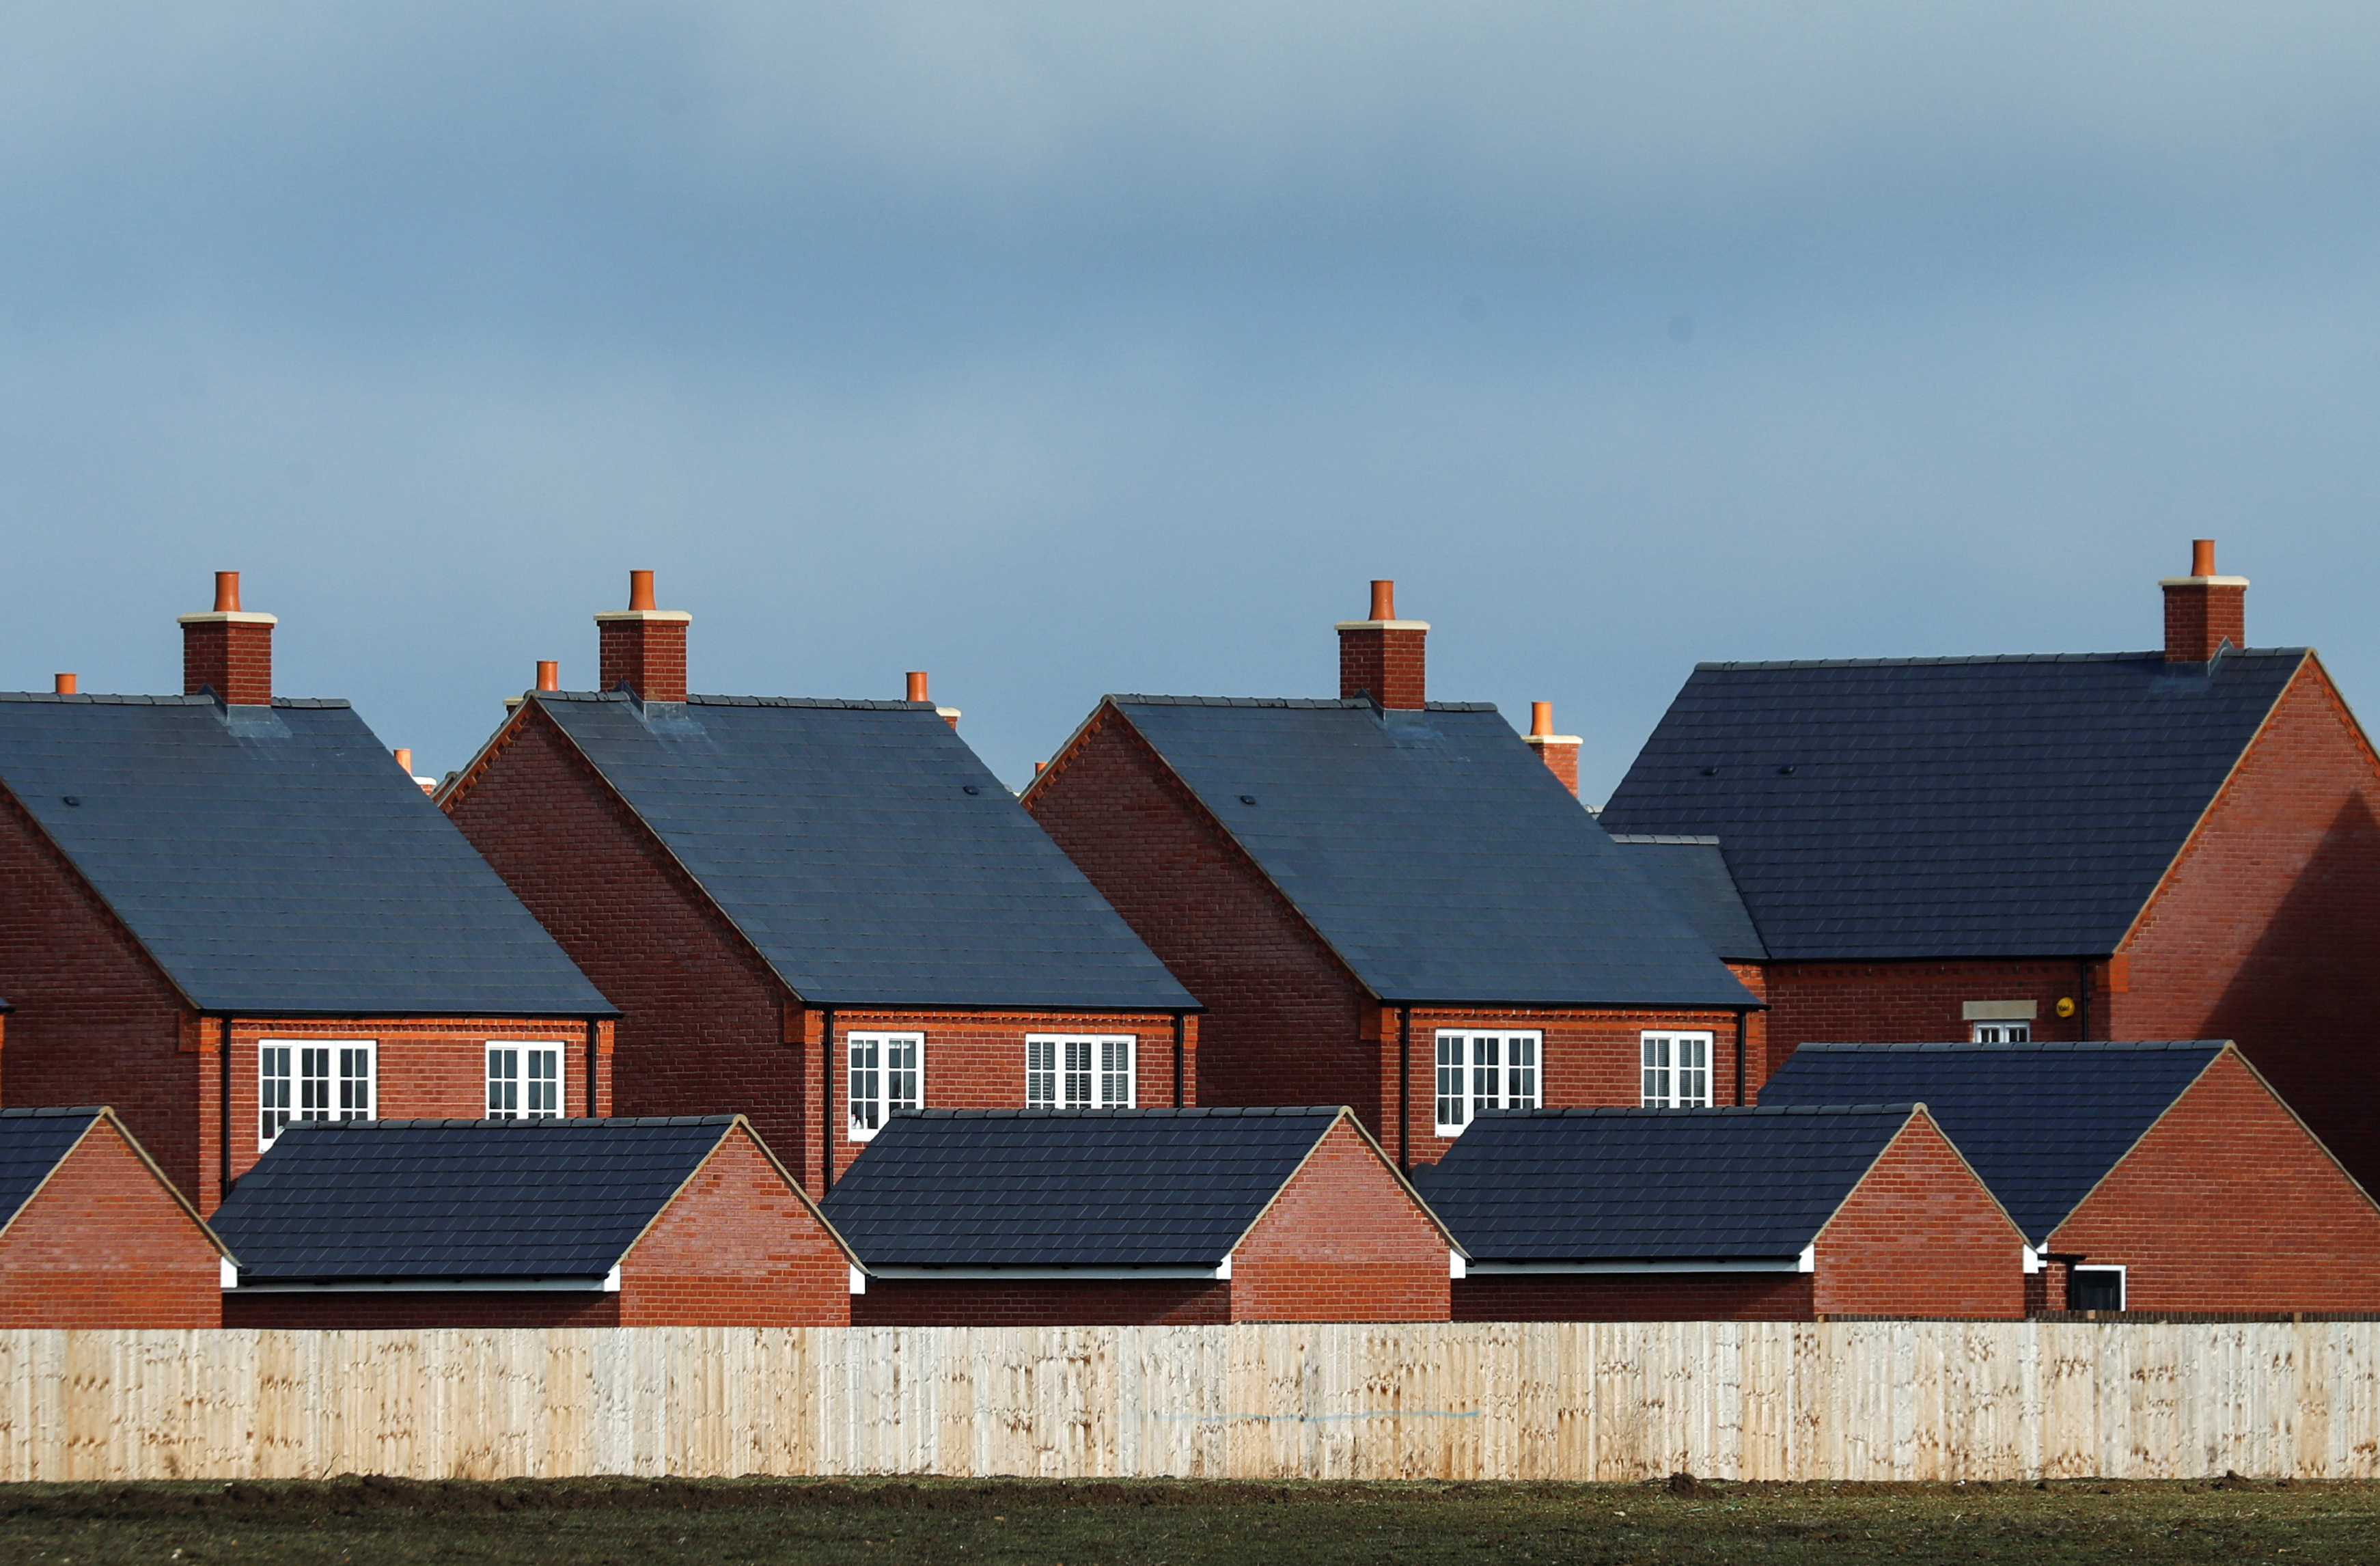 New residential homes are seen at a housing estate in Aylesbury, Britain, February 7, 2017.  REUTERS/Eddie Keogh/File Photo